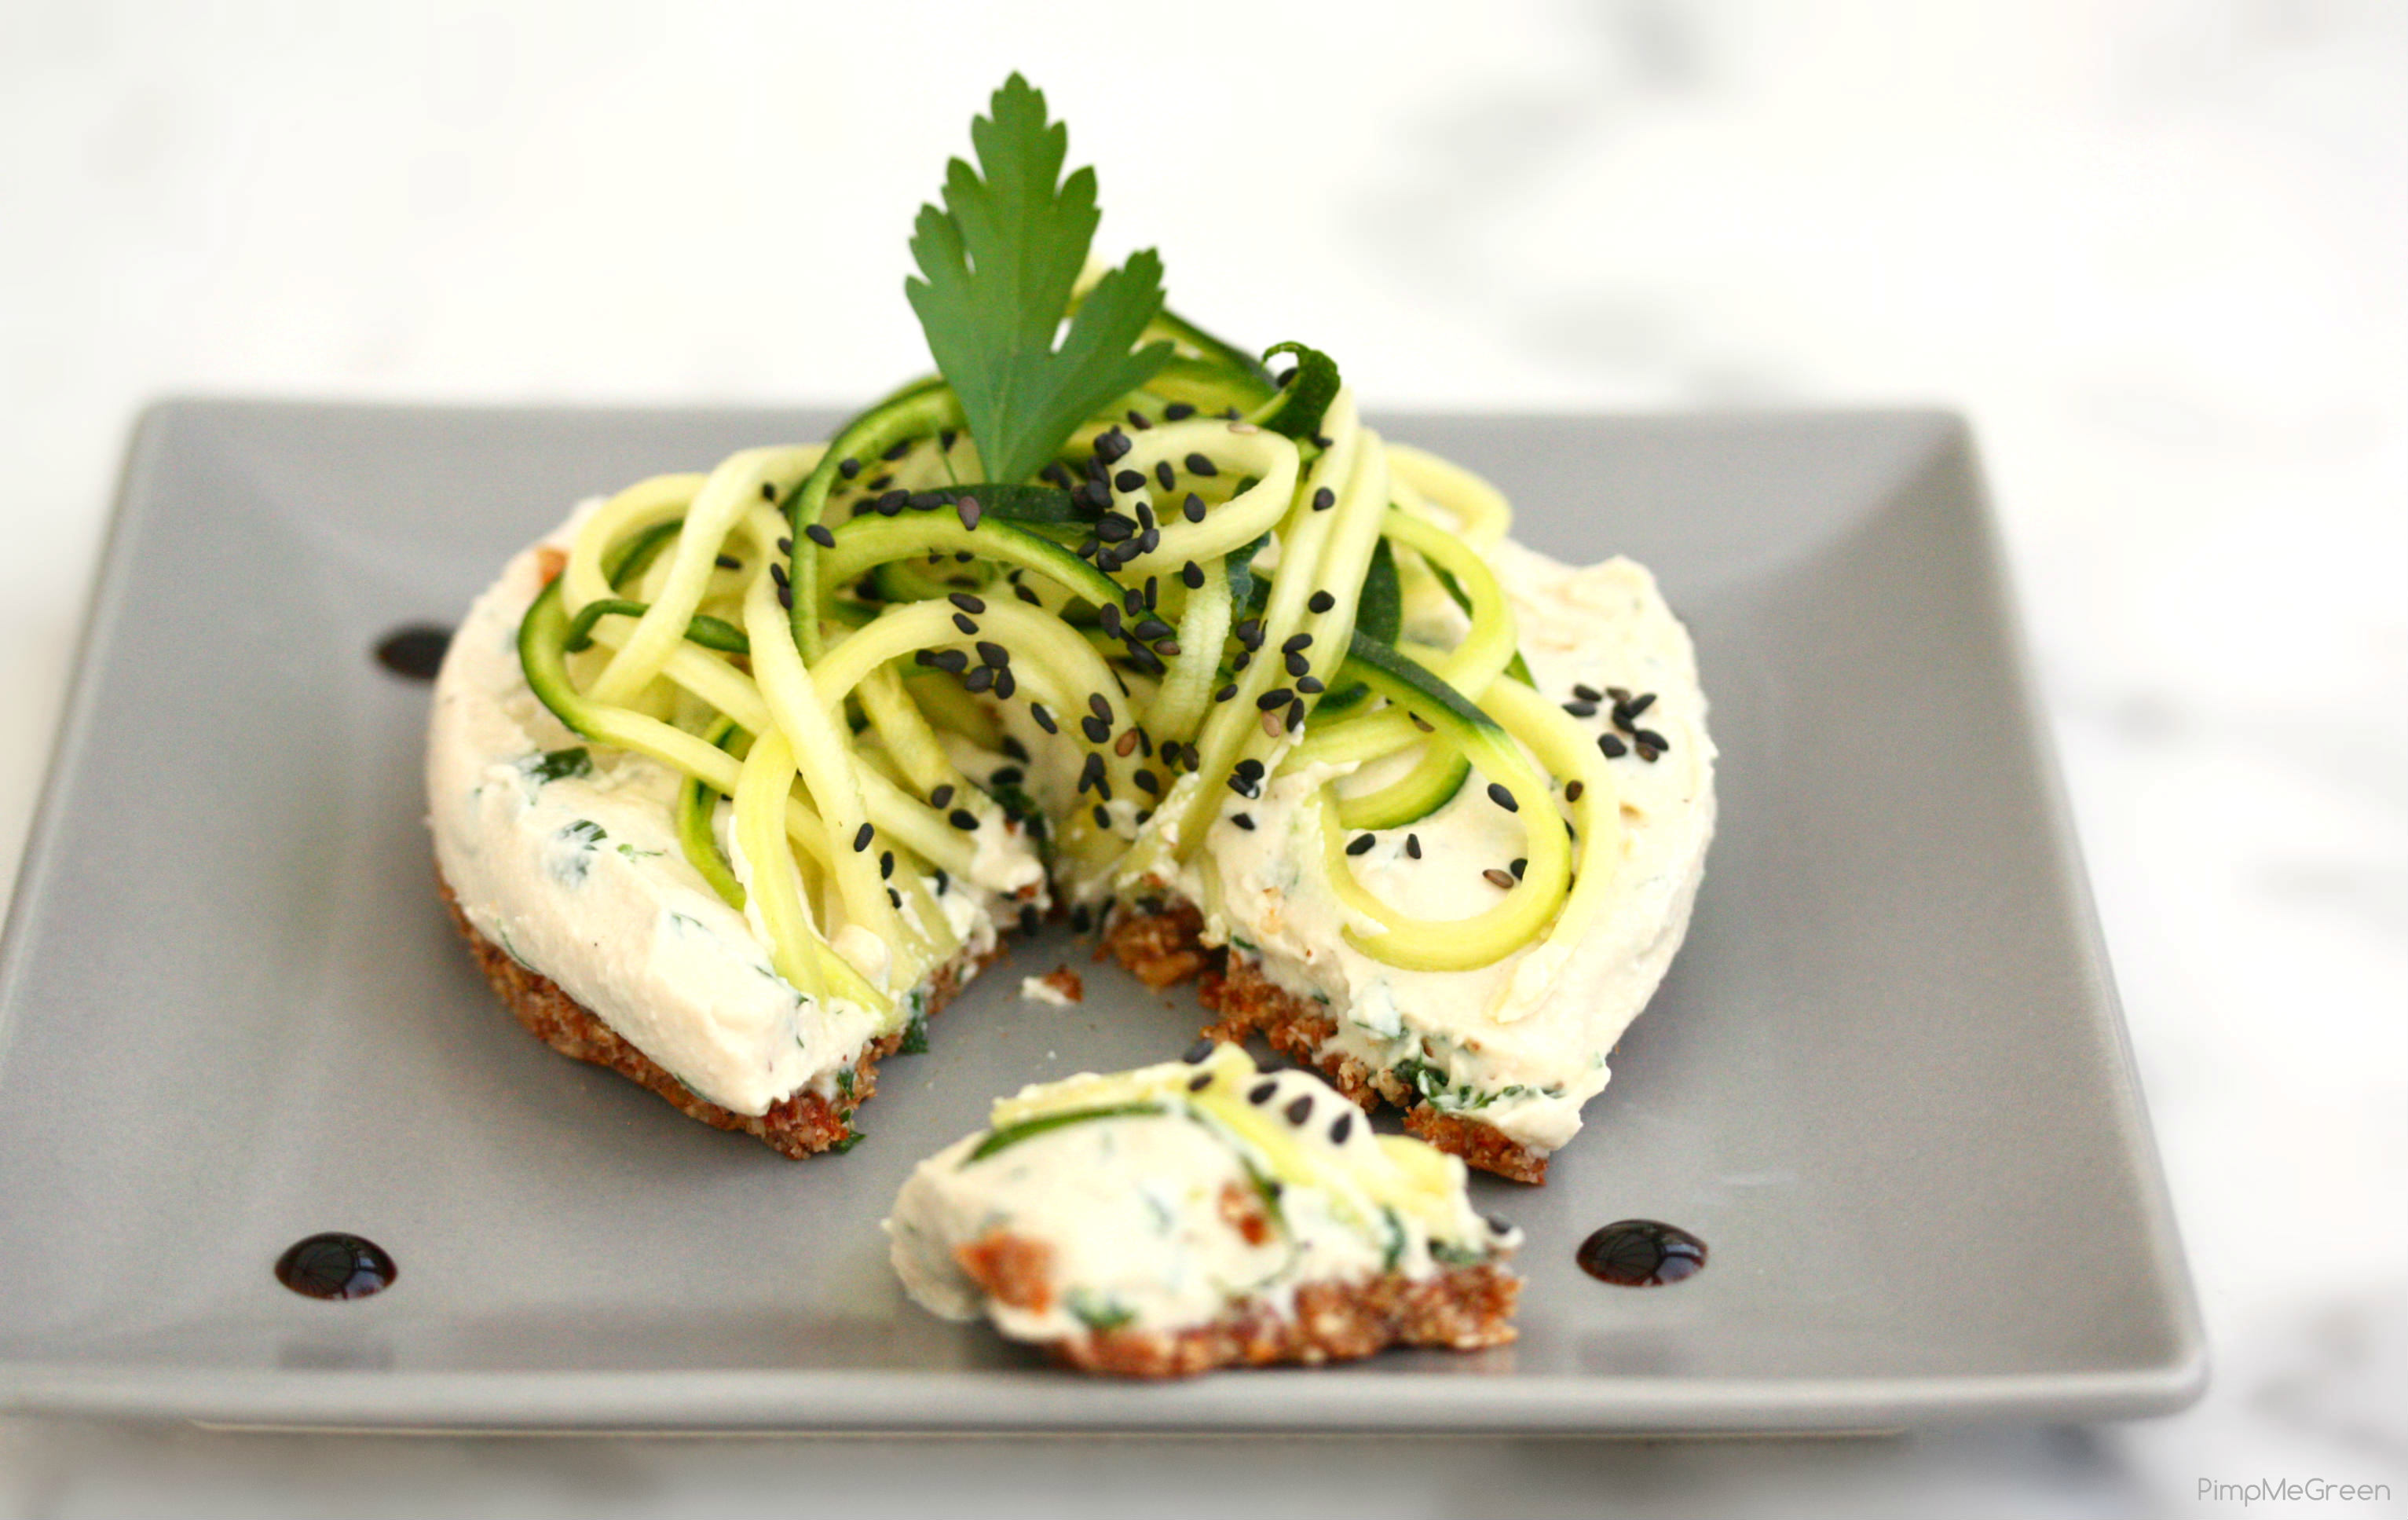 Cheesecake courgette cru PMG2